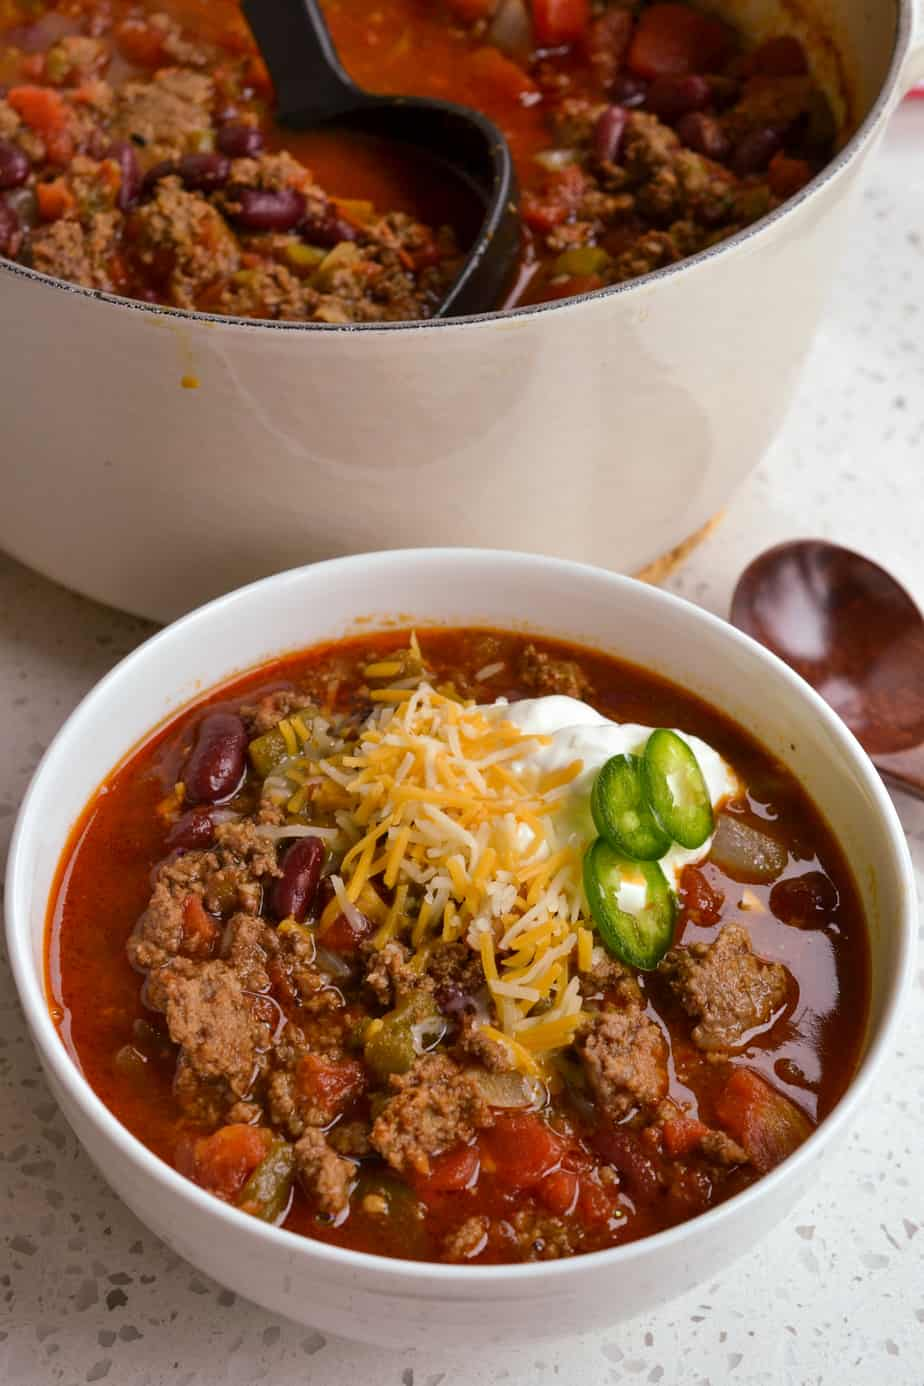 The Best Chili Recipe is the ultimate balance of spicy and thick with a touch of brown sugar sweetness.